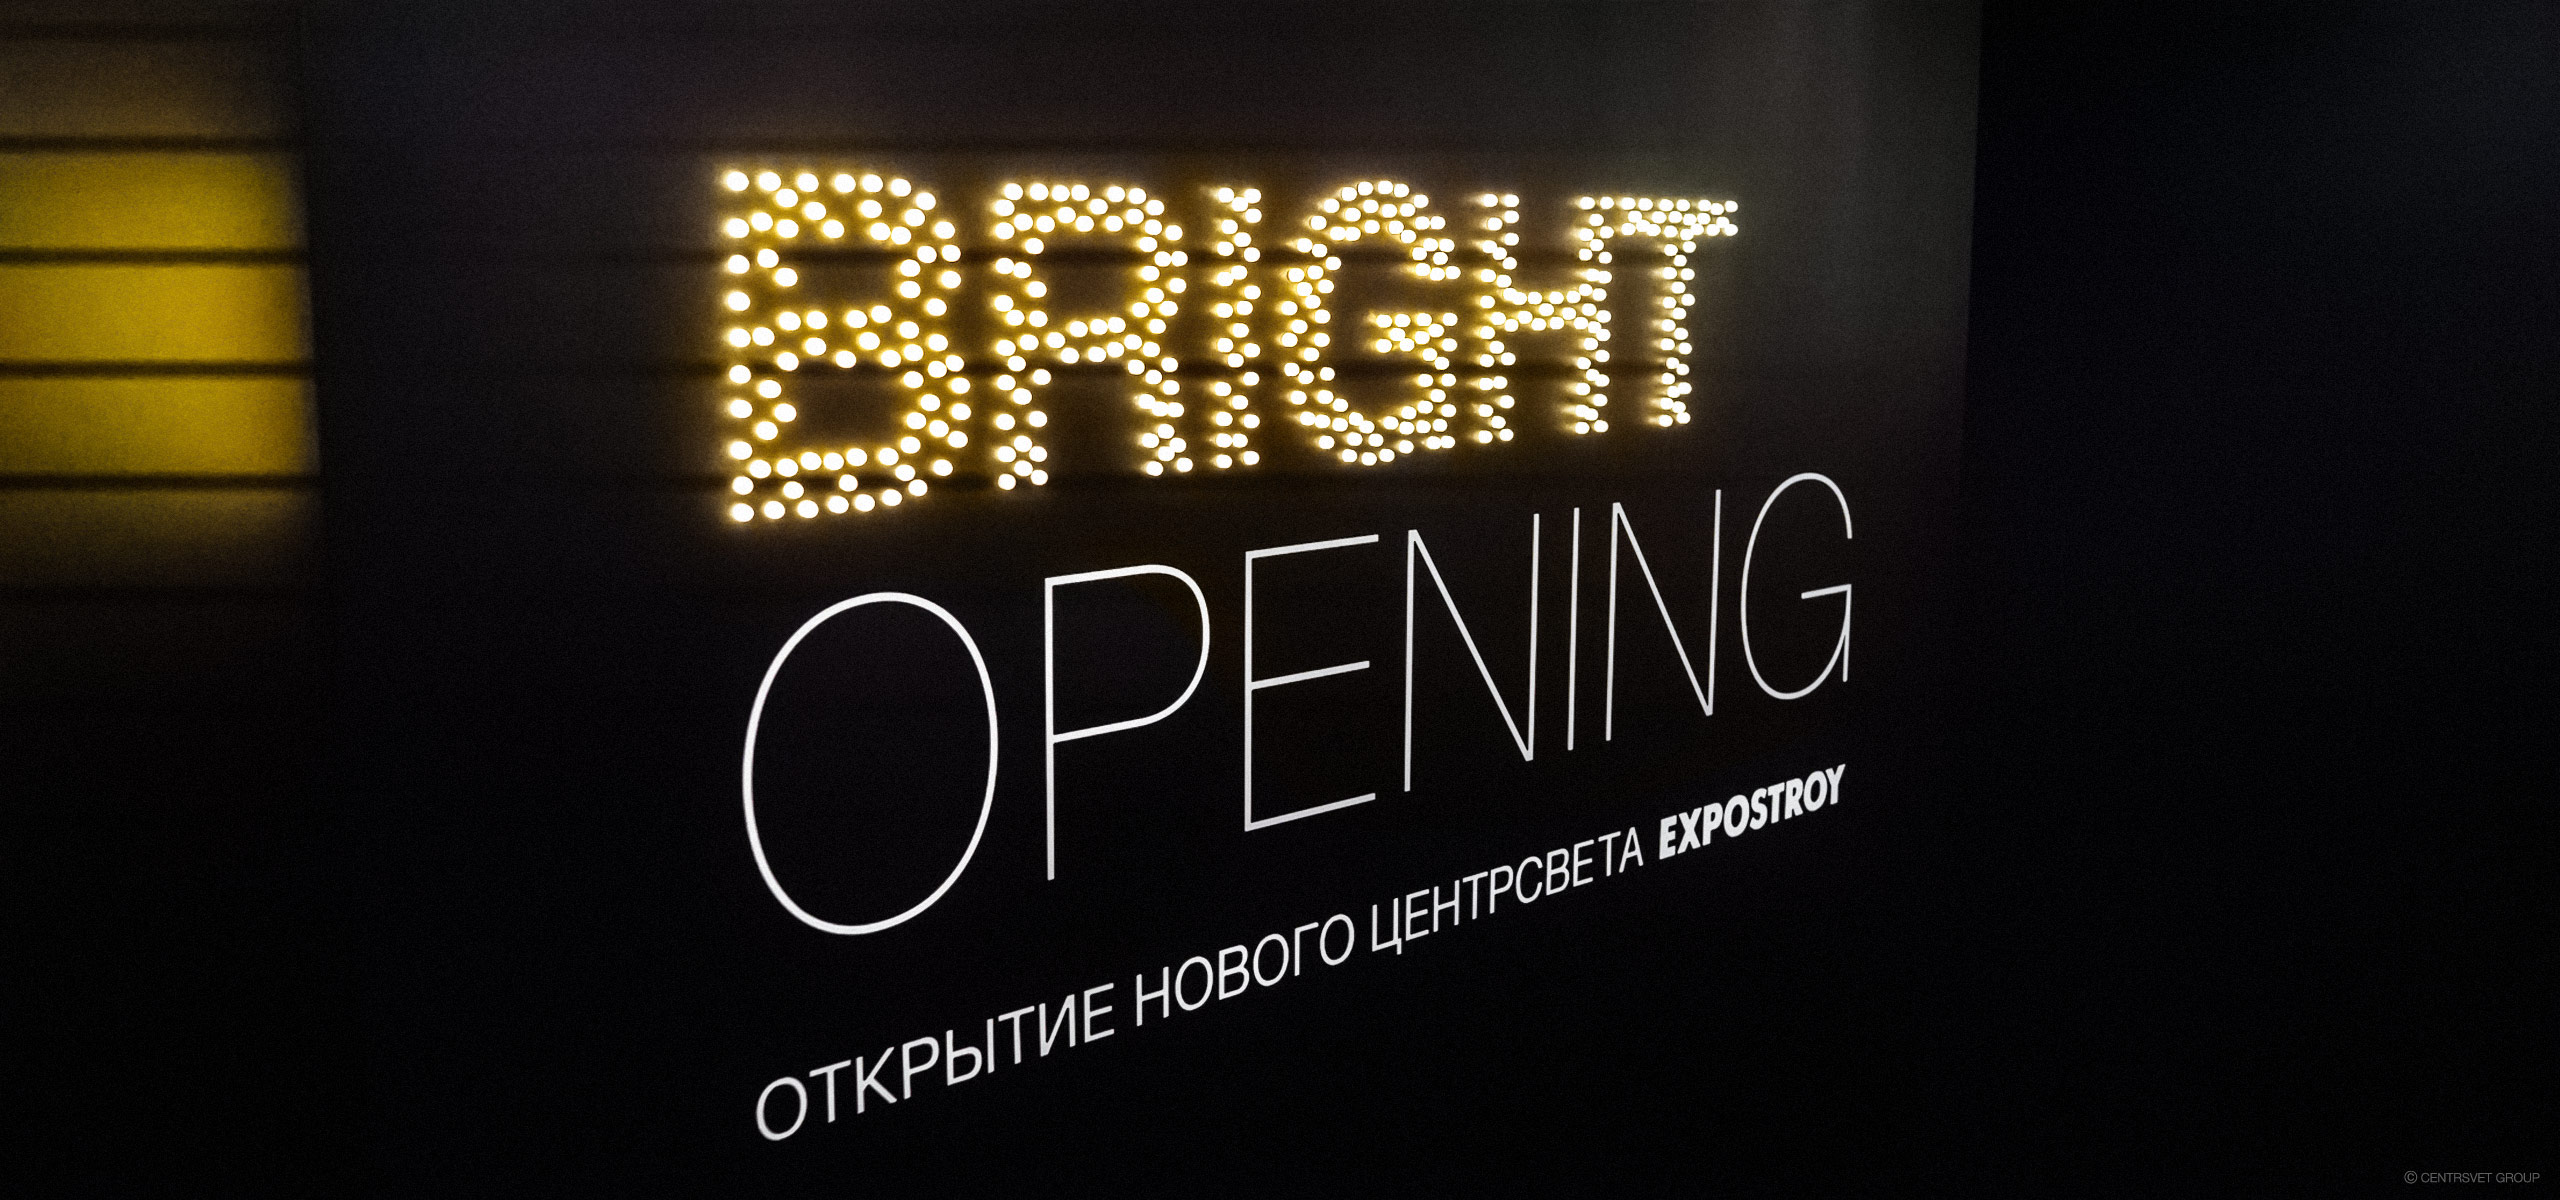 BRIGHT OPENING